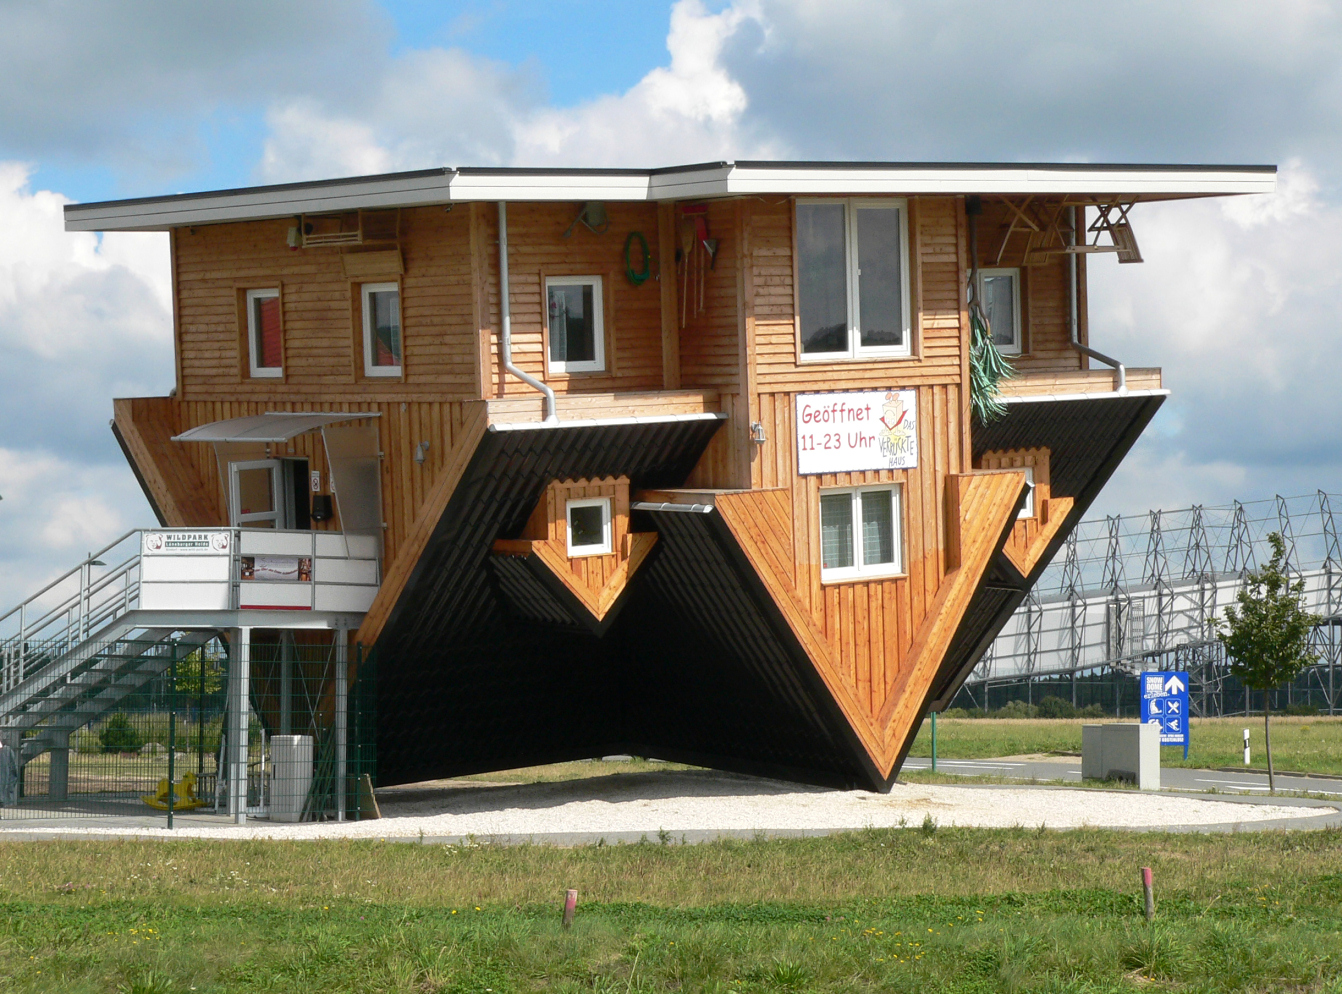 The amazing house in germany that is upside down How to design a house